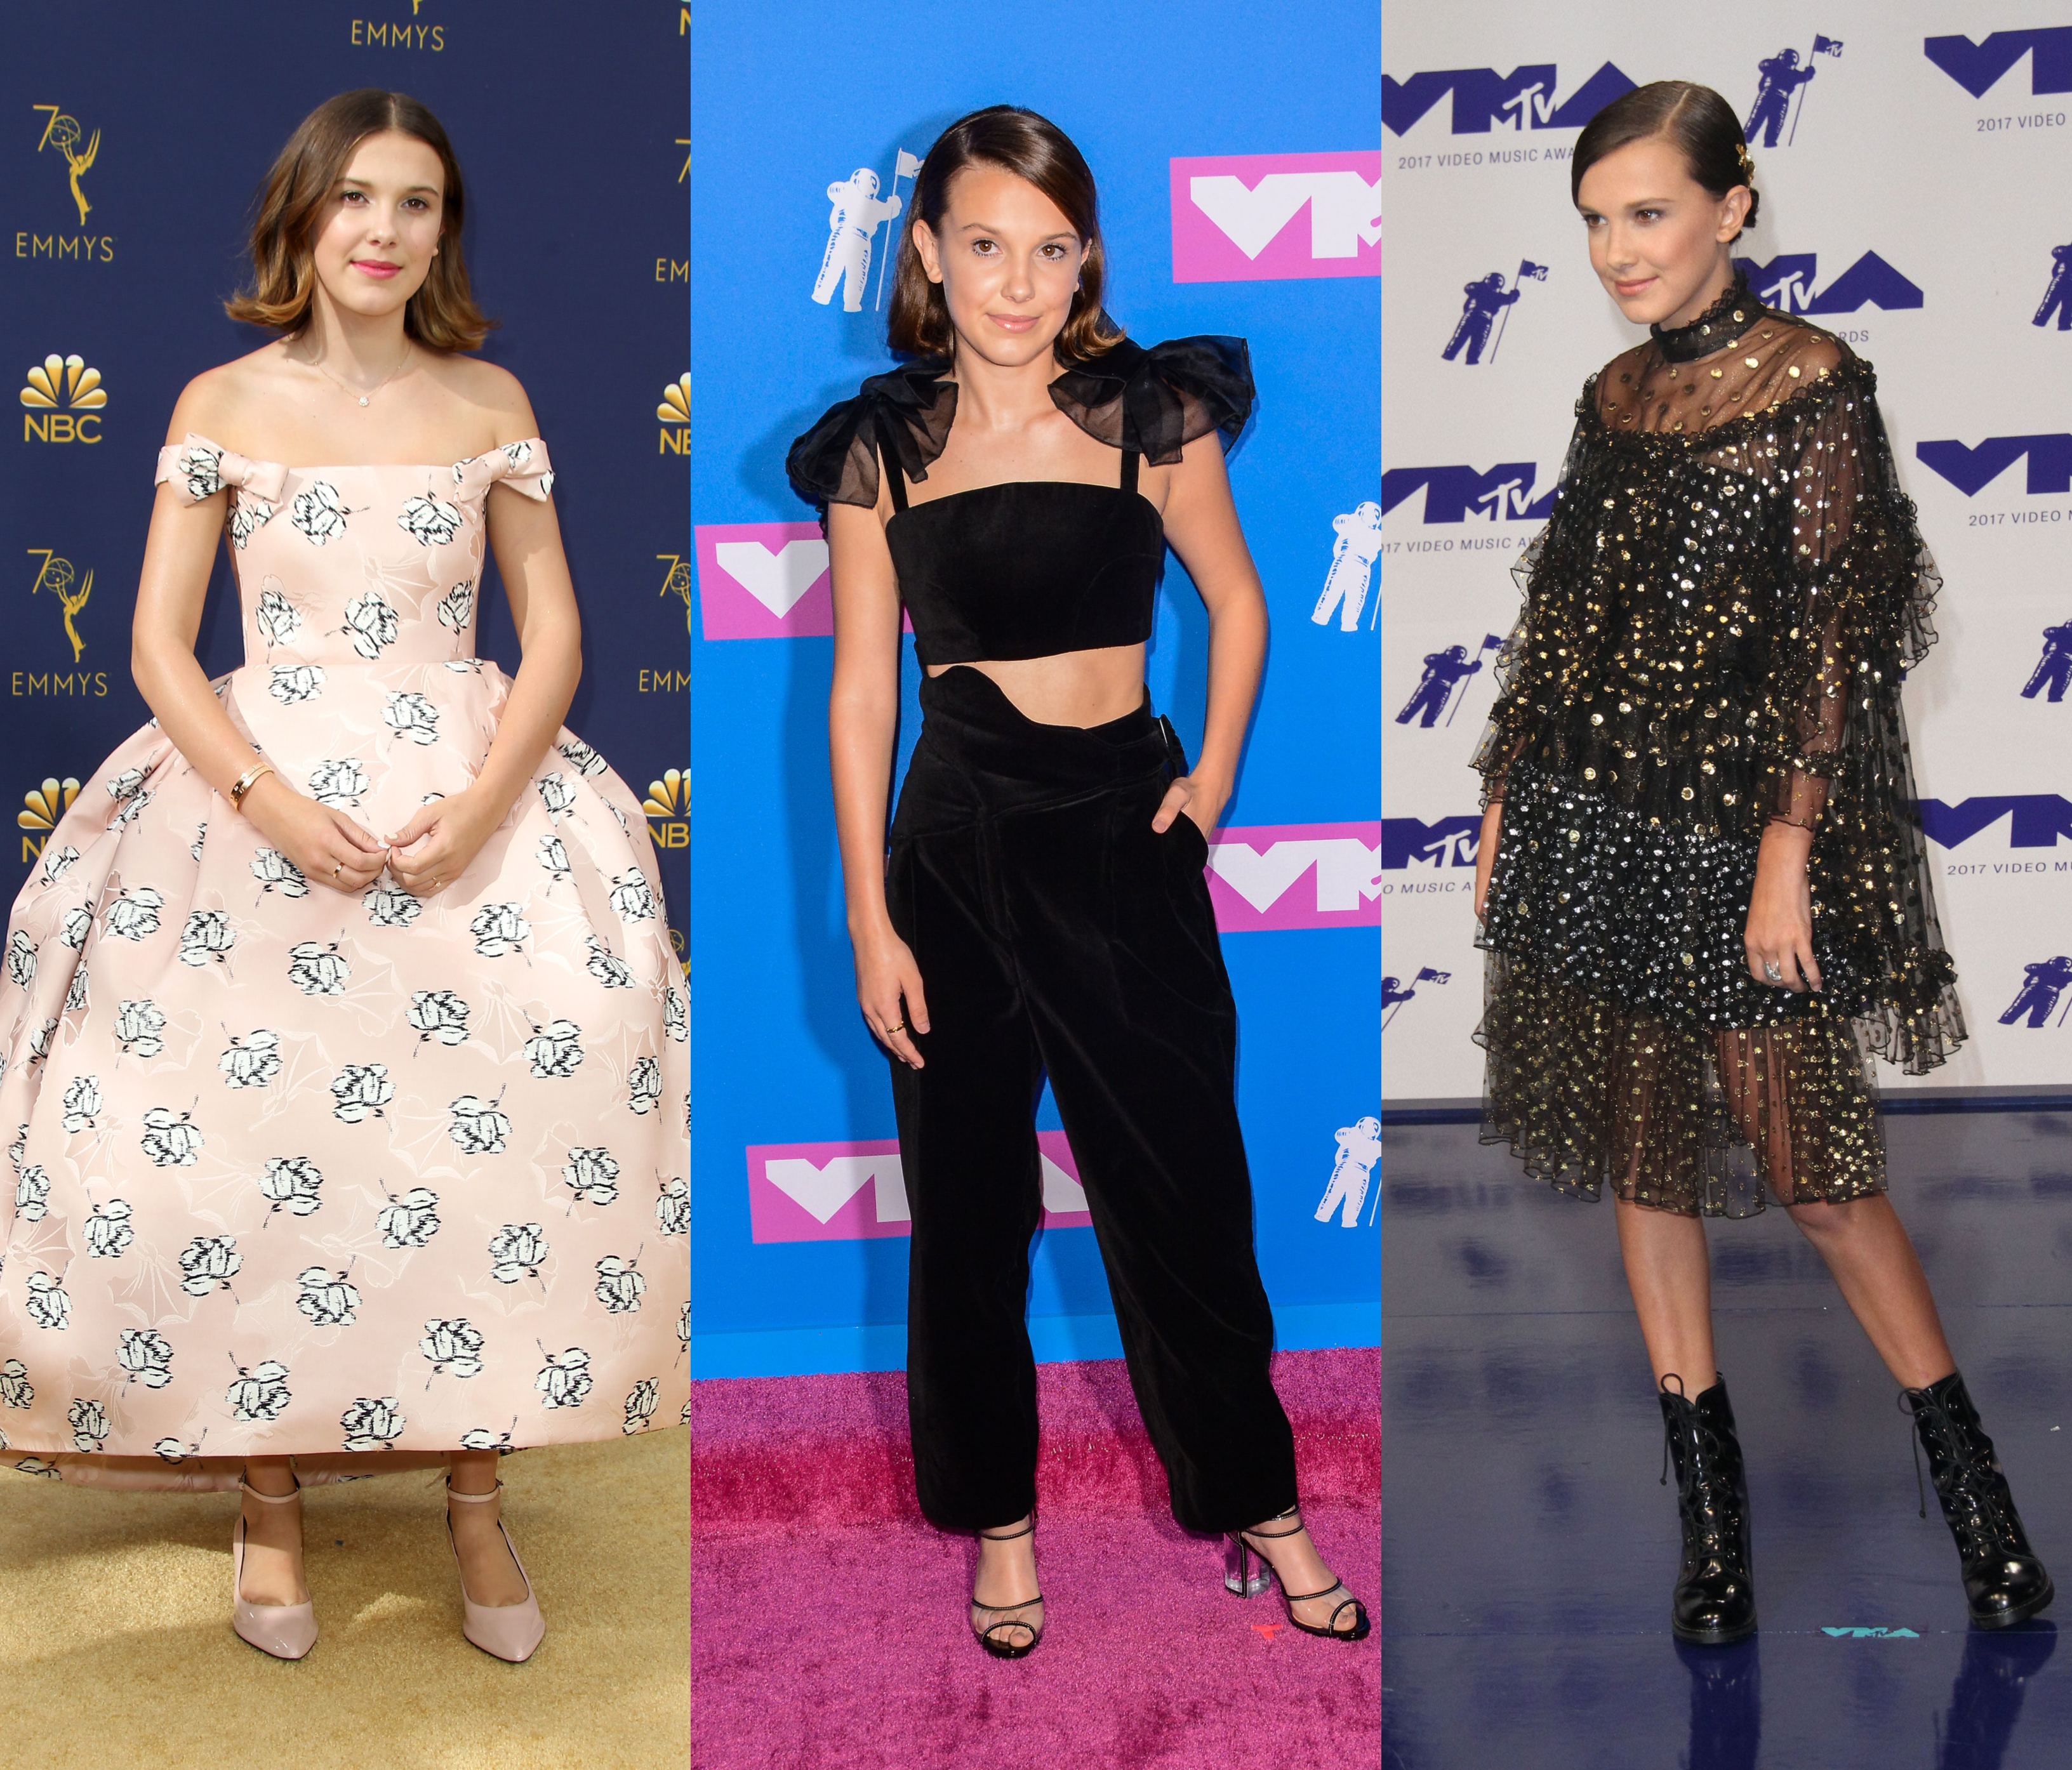 Stranger Fashion Our 12 Favorite Red Carpet Looks By Millie Bobby Brown Jetss